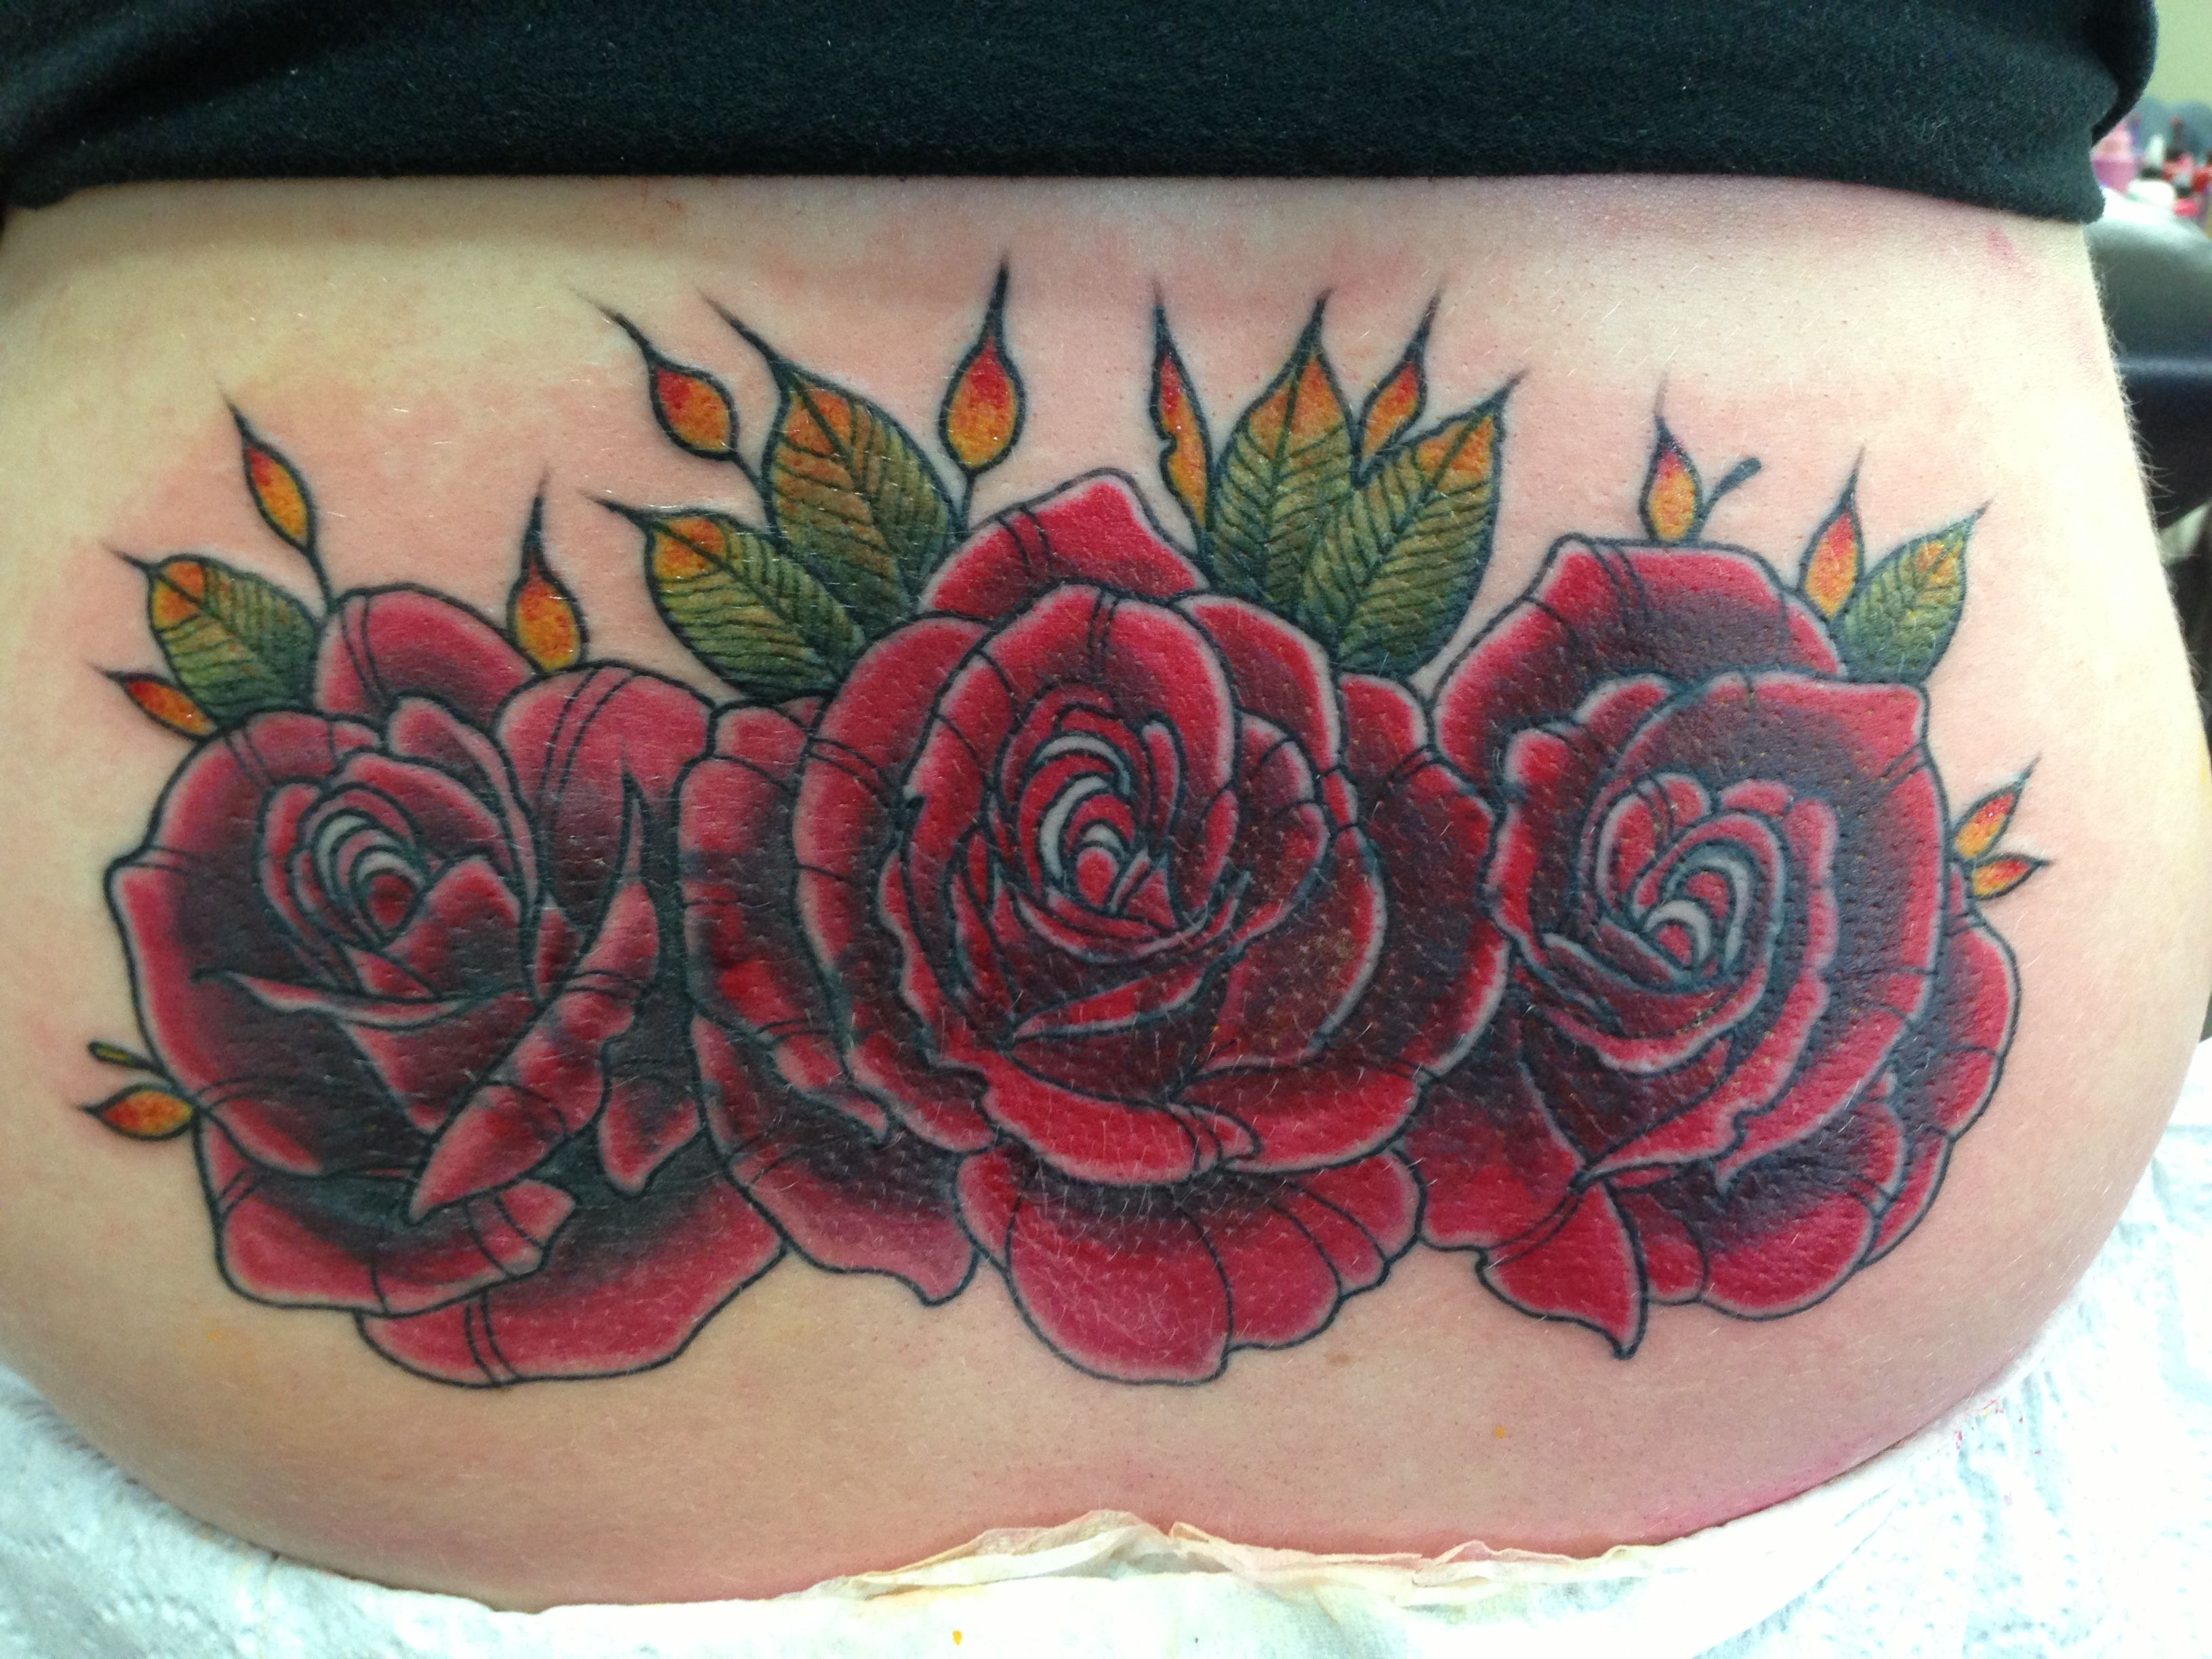 Roses Tattoo Lower Back Cover Up Cover Tattoo Rose Tattoo Cover Up Lower Back Tattoos